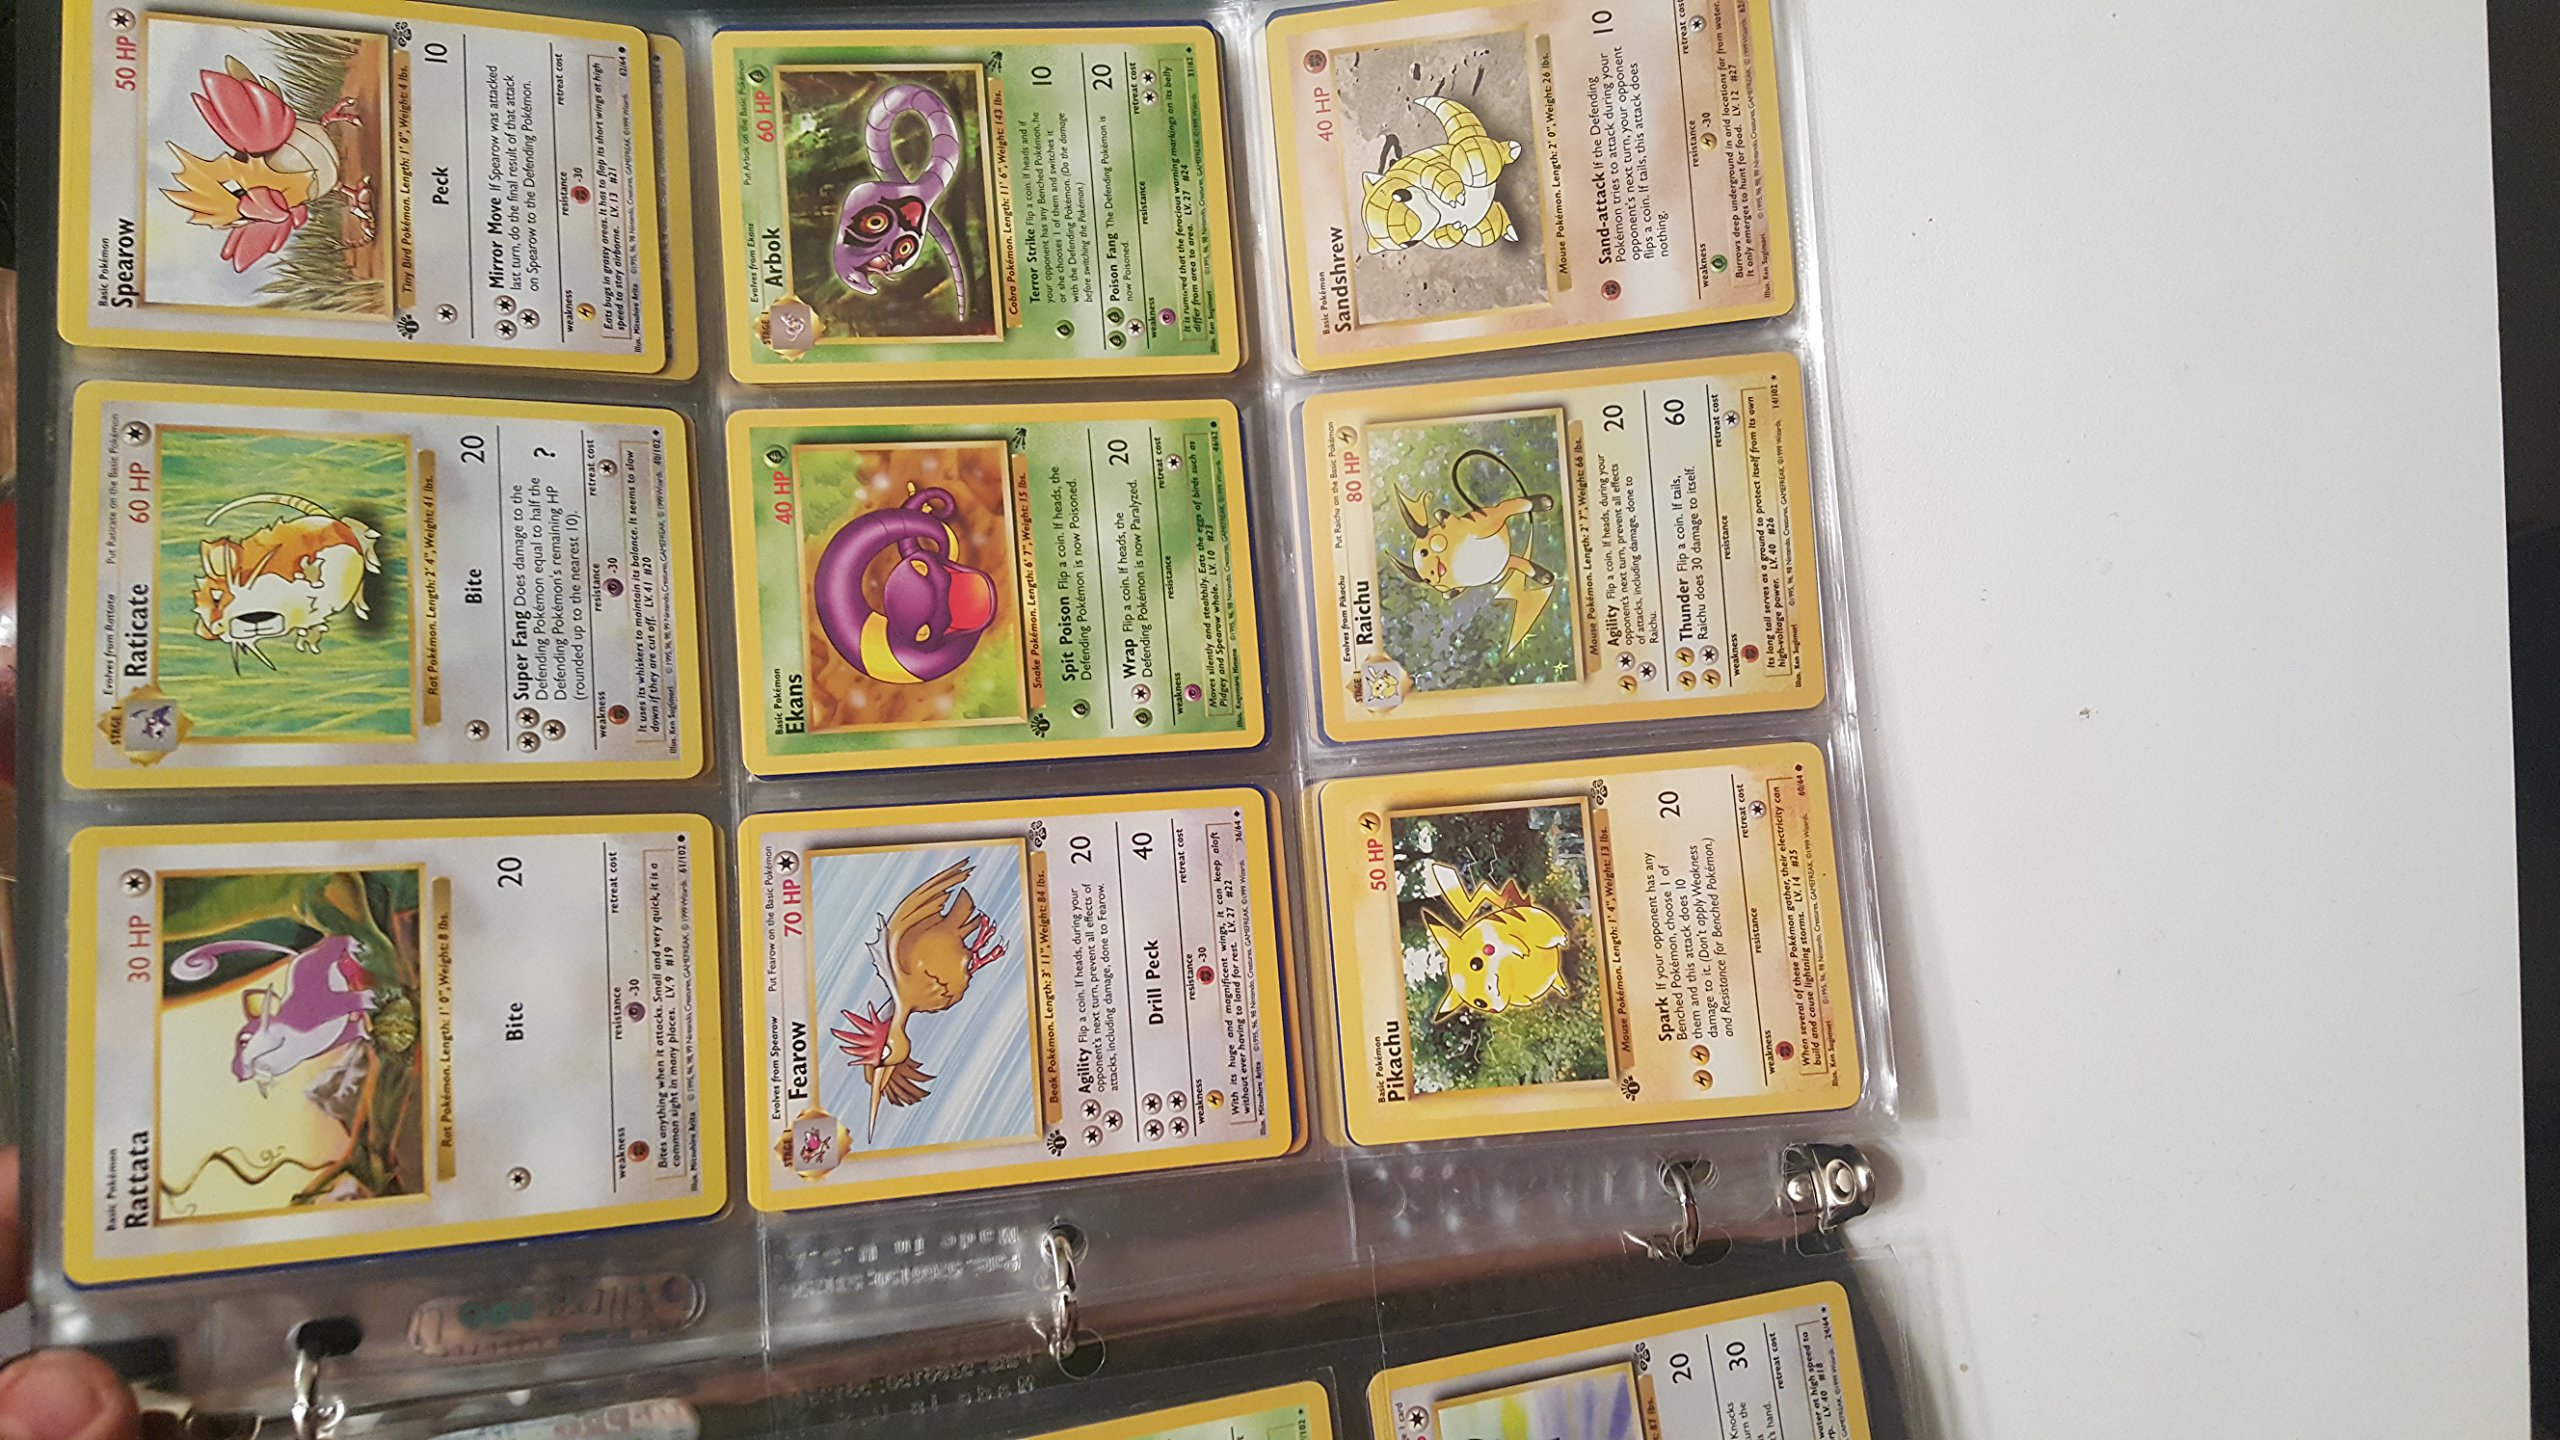 Pokemon COMPLETE Set of ORIGINAL 151/150 Cards (Contains Base, Jungle, Fossil Cards) by Pokemon (Image #3)